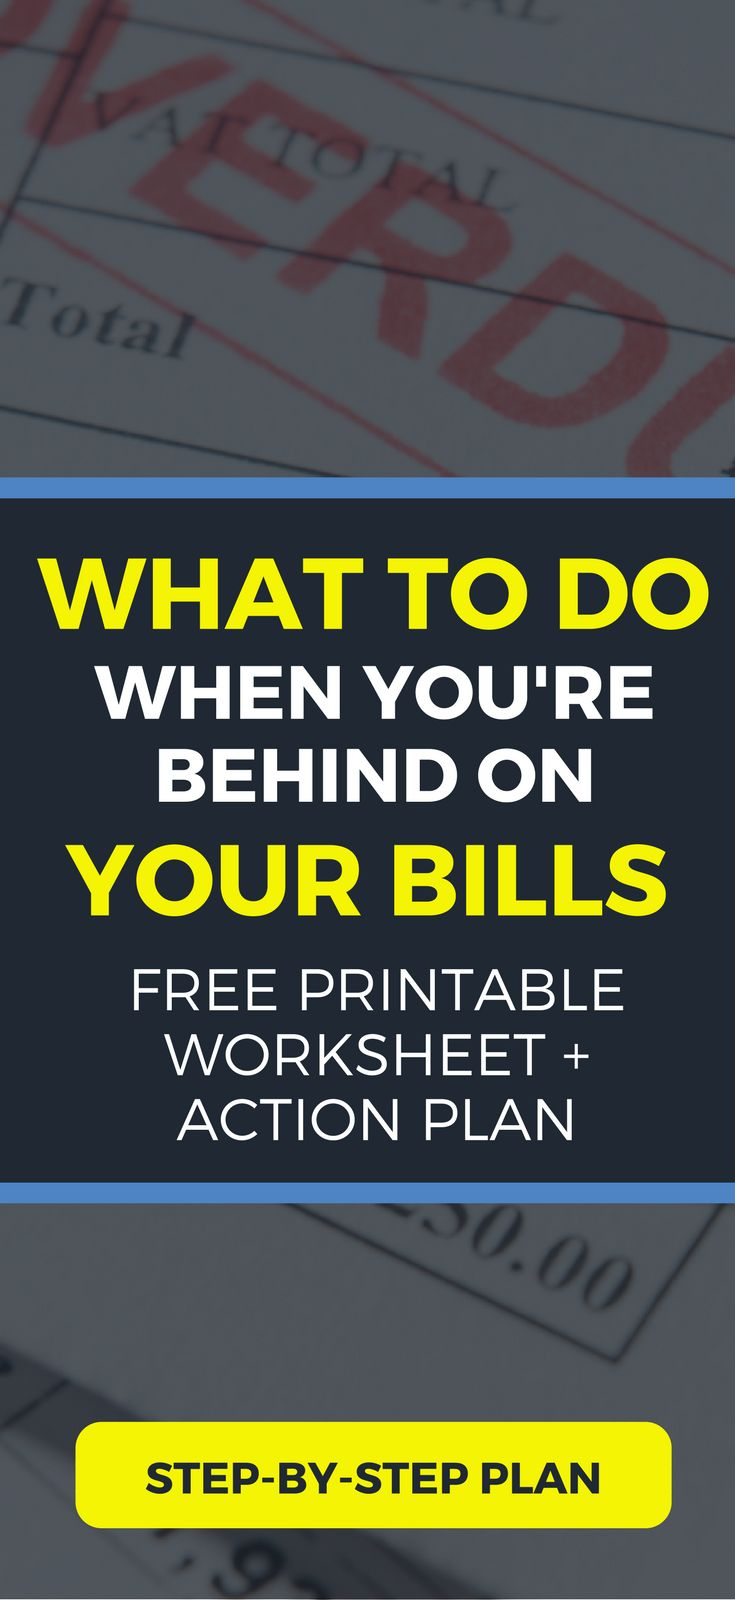 8 SMART steps you can take to get get caught up on bills. Whether you're behind on bills, credit card payments, rent, or a mortgage. Here's an action plan and tips for getting caught up and out of debt.